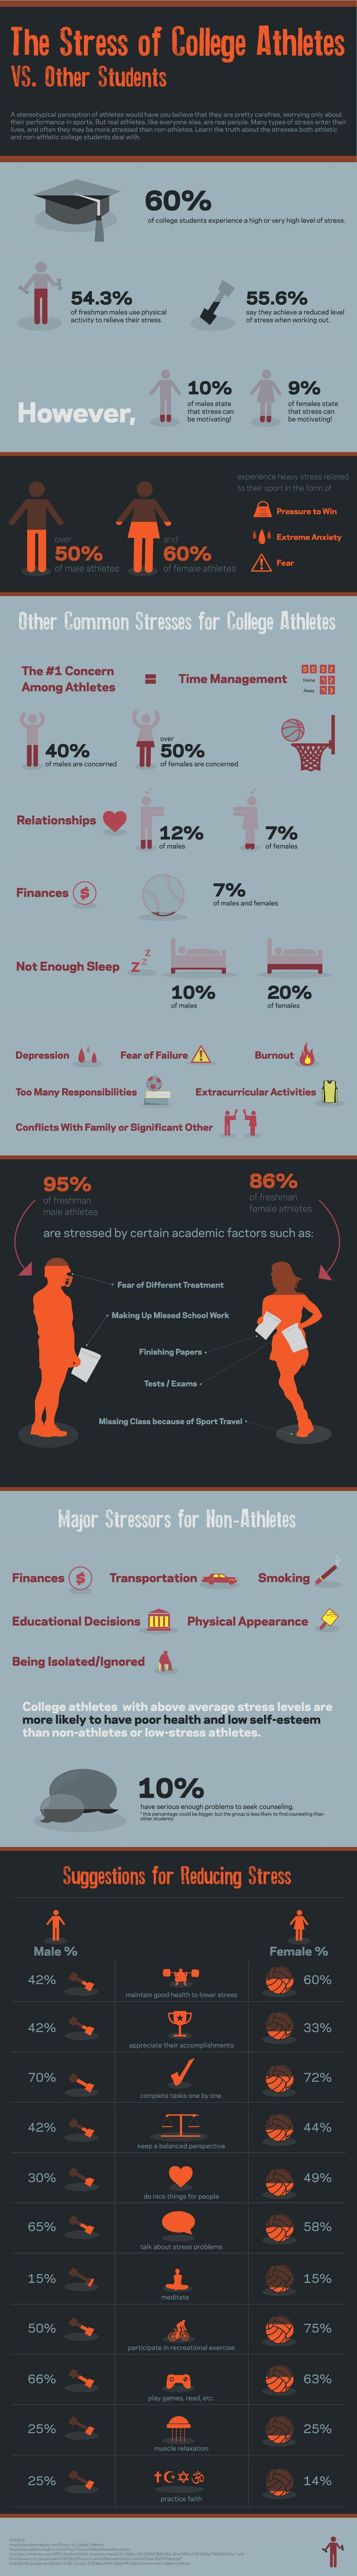 How Stress Can Affect Sports Performance